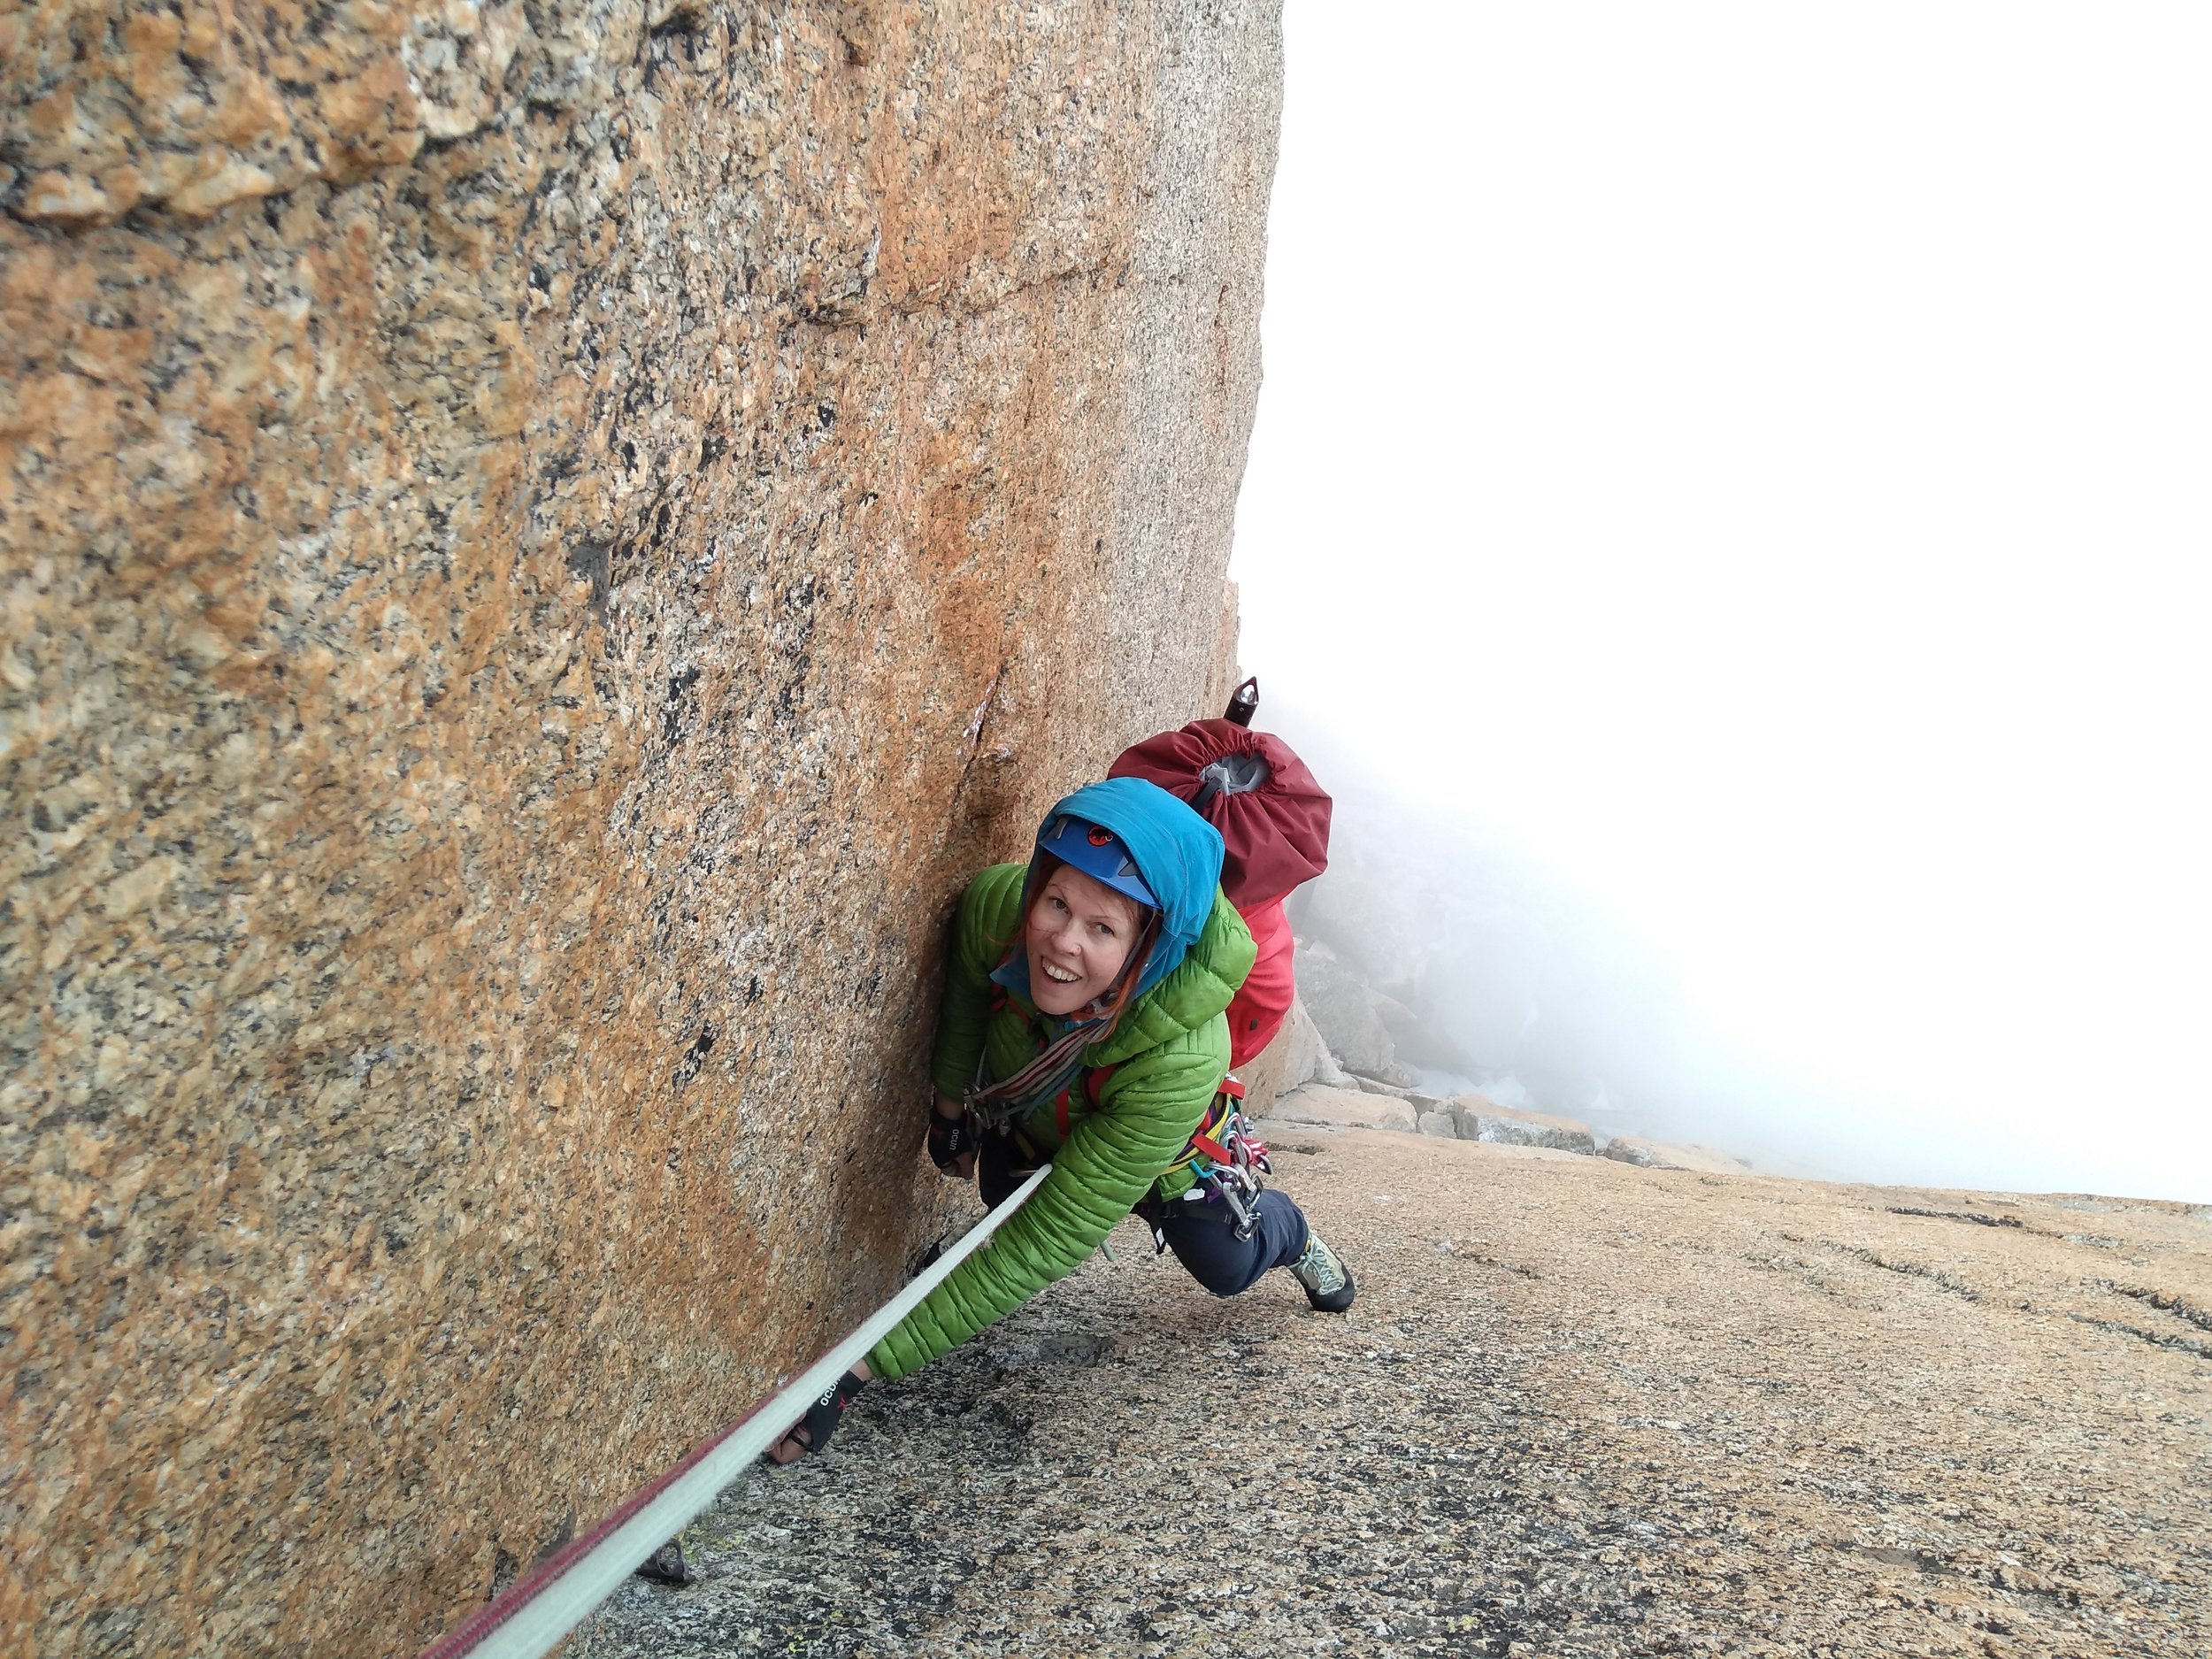 Maria on the 5 Star finish to the Voie Rebuffat, Aiguille du Midi.jpg